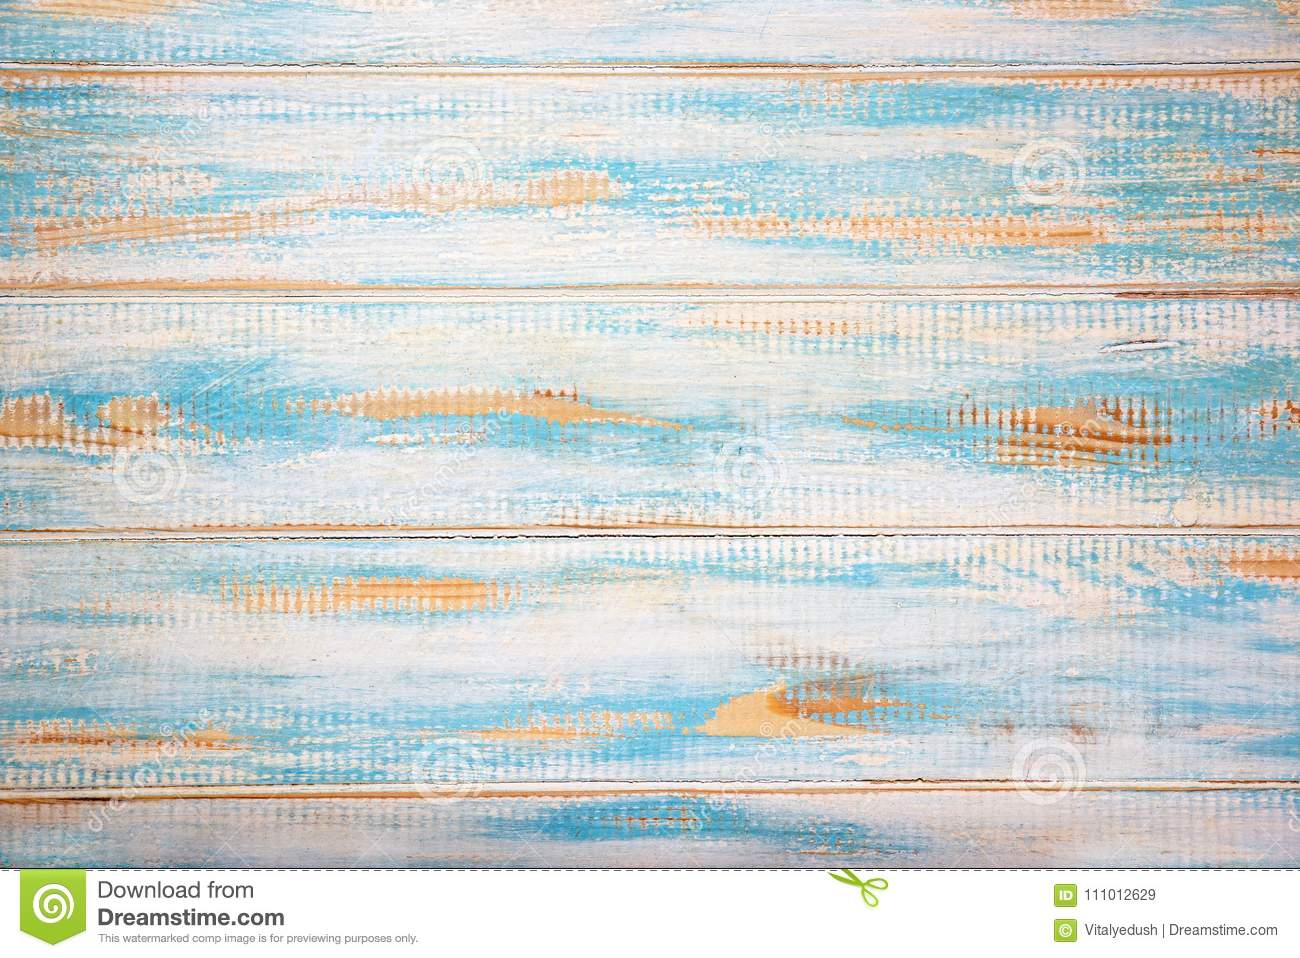 Rustic barn wood art texture wallpaper background.